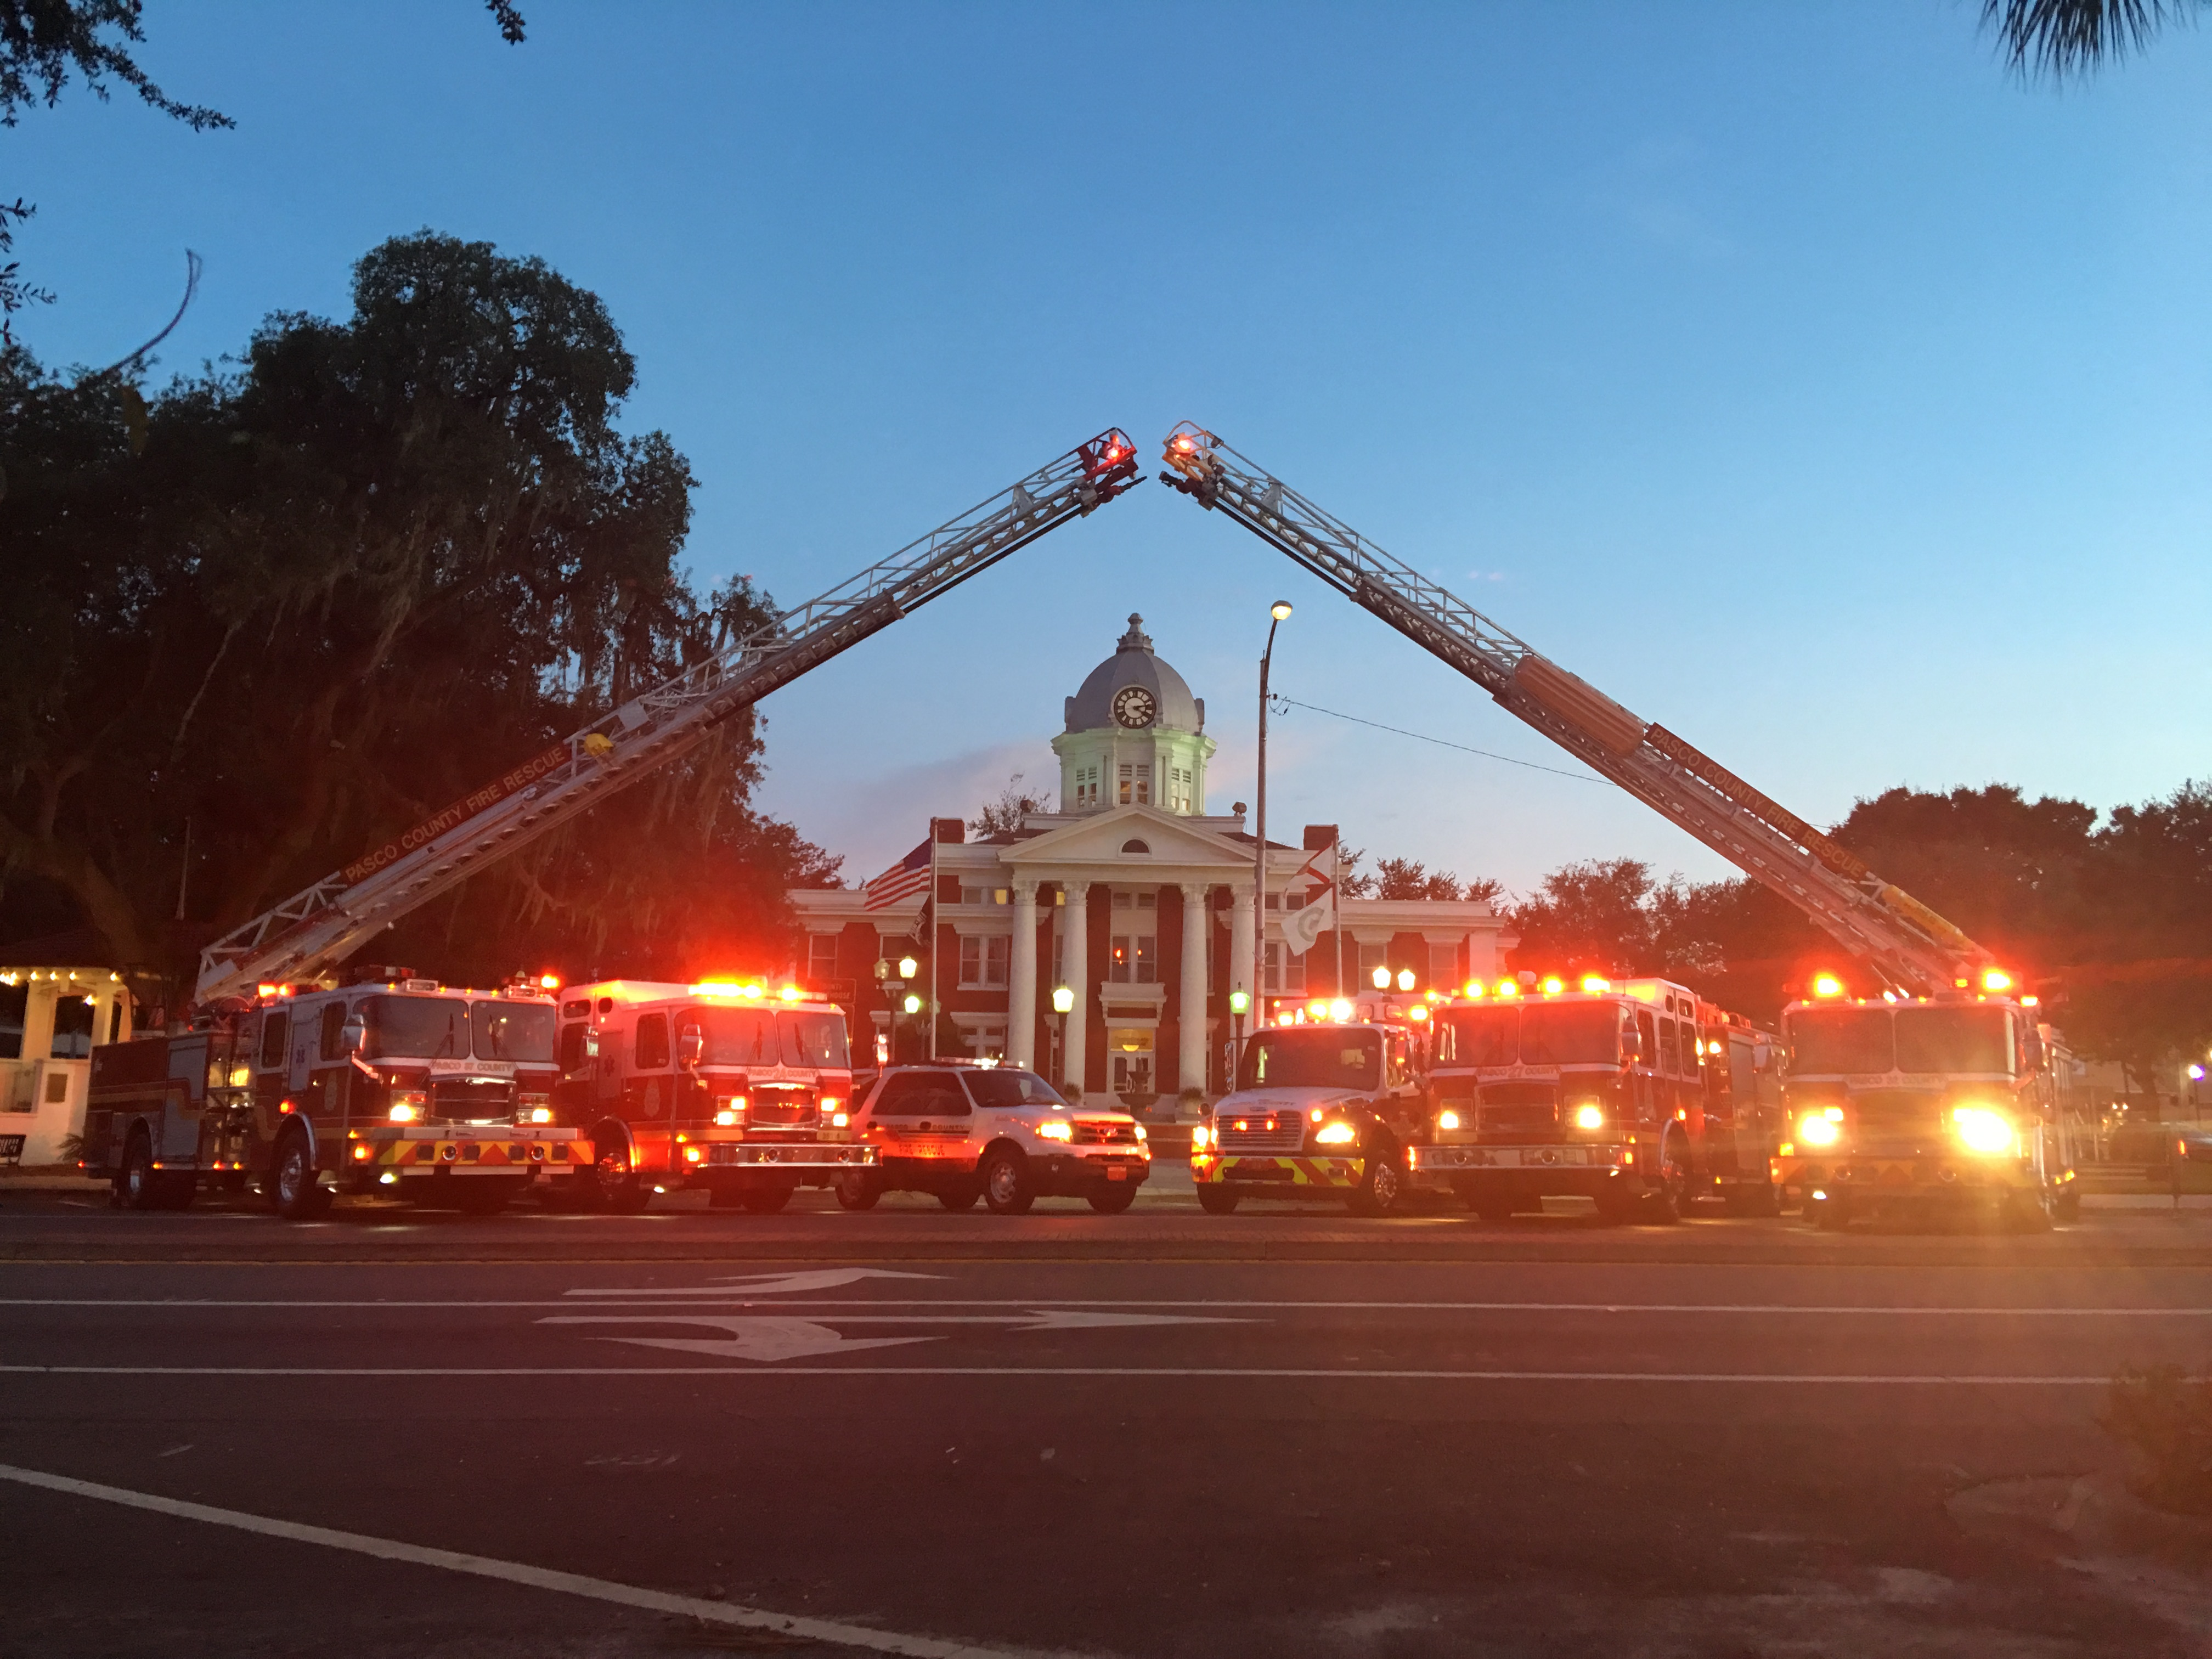 Fire Trucks and Old Pasco County Courthouse